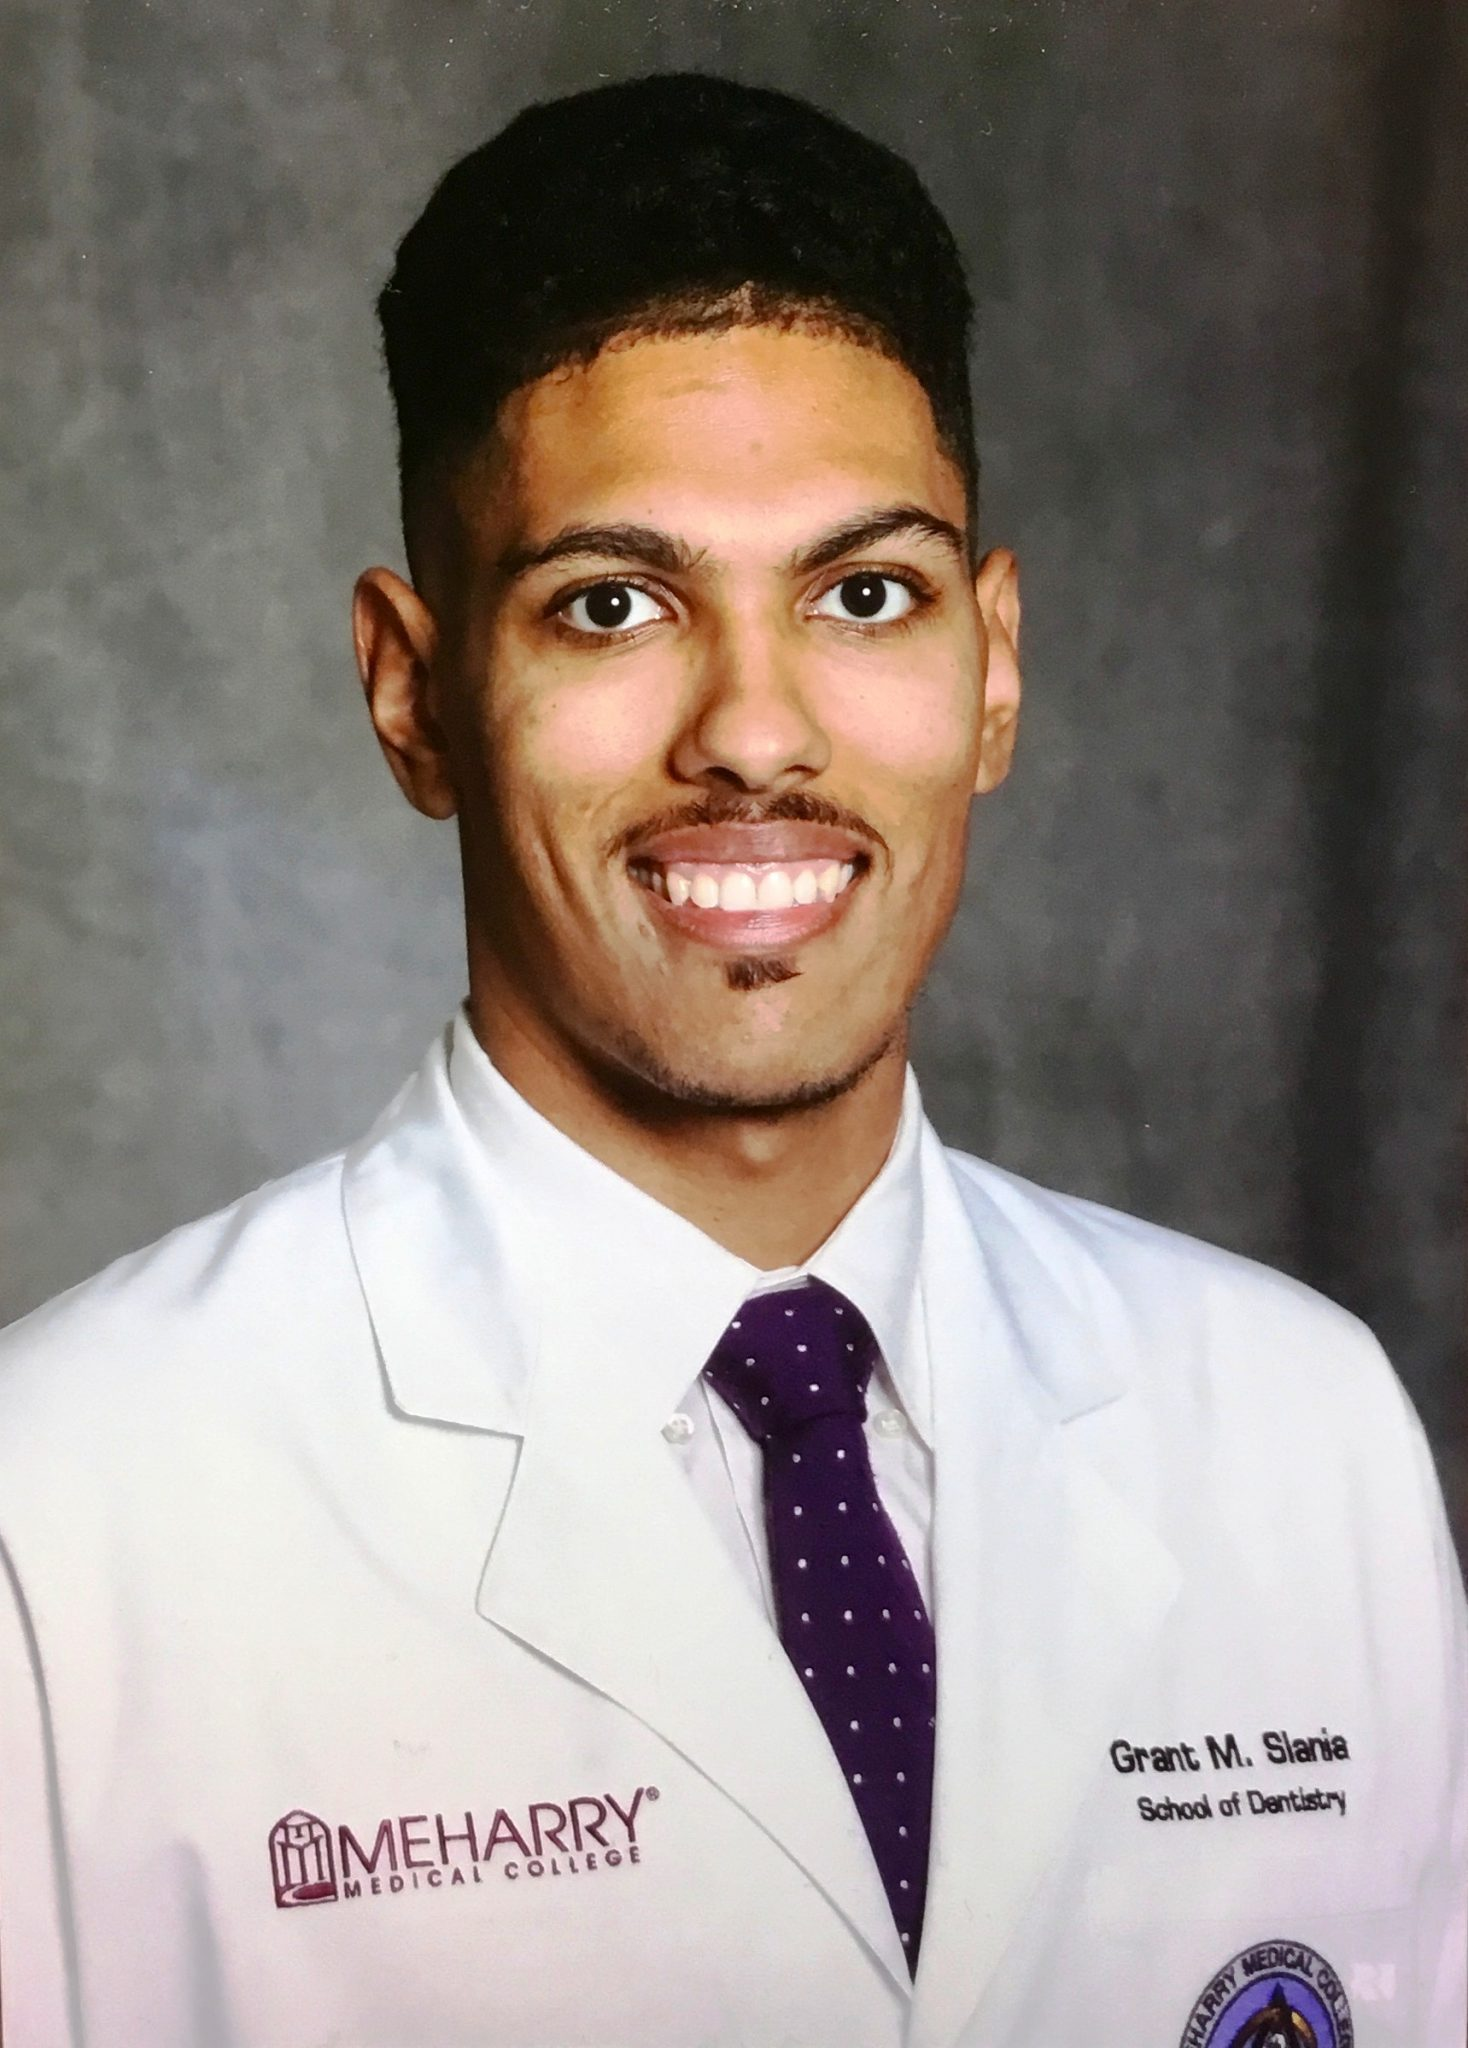 Grant Slania Of Meharry Medical College Is Our Hercules Scholar Of The Week